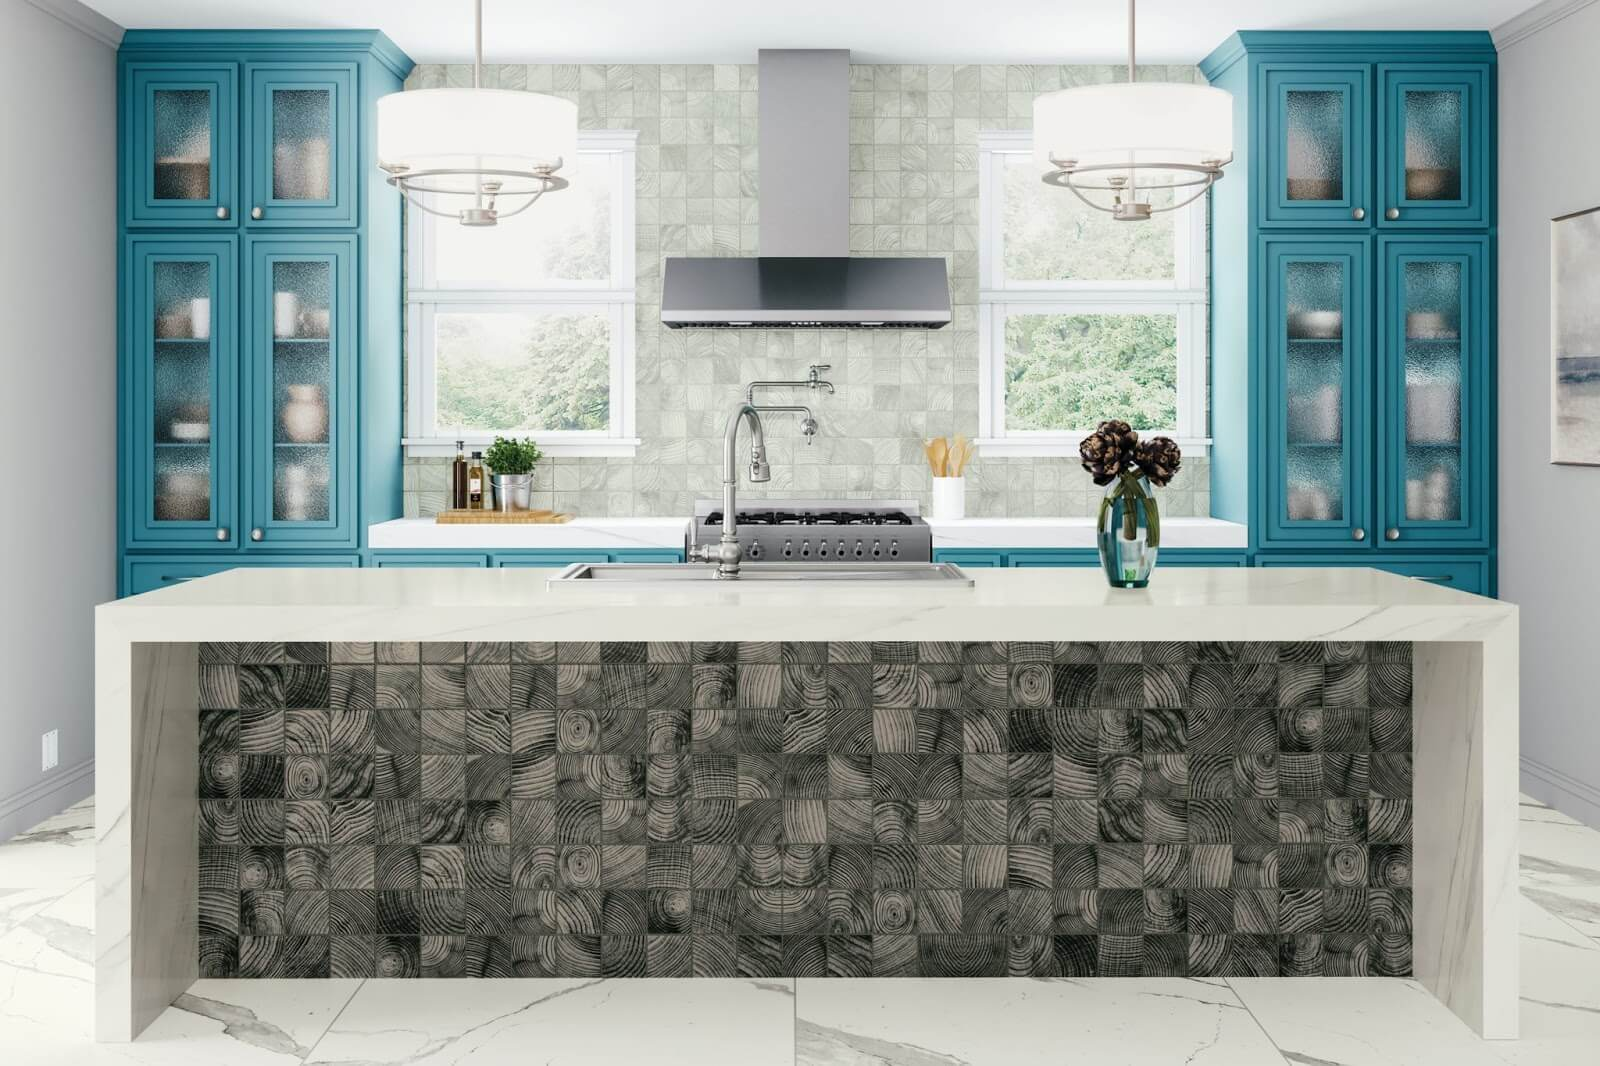 Kitchen island covered in ceramic tile